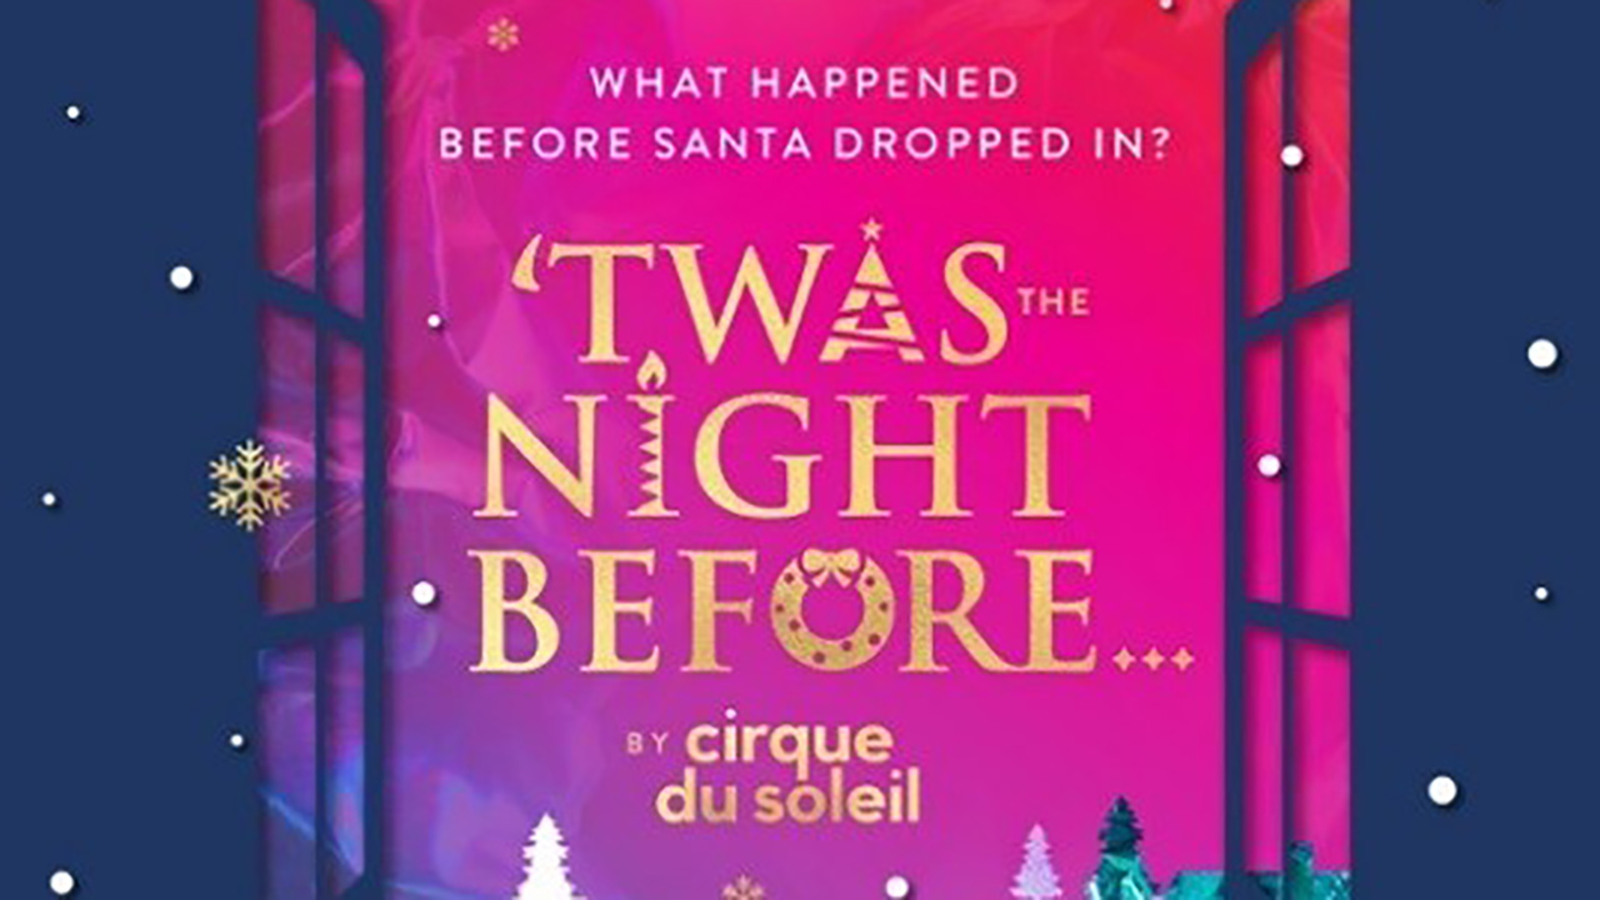 Cirque du Soleil bringing new Christmas show, 'Twas the Night Before...' to Chicago